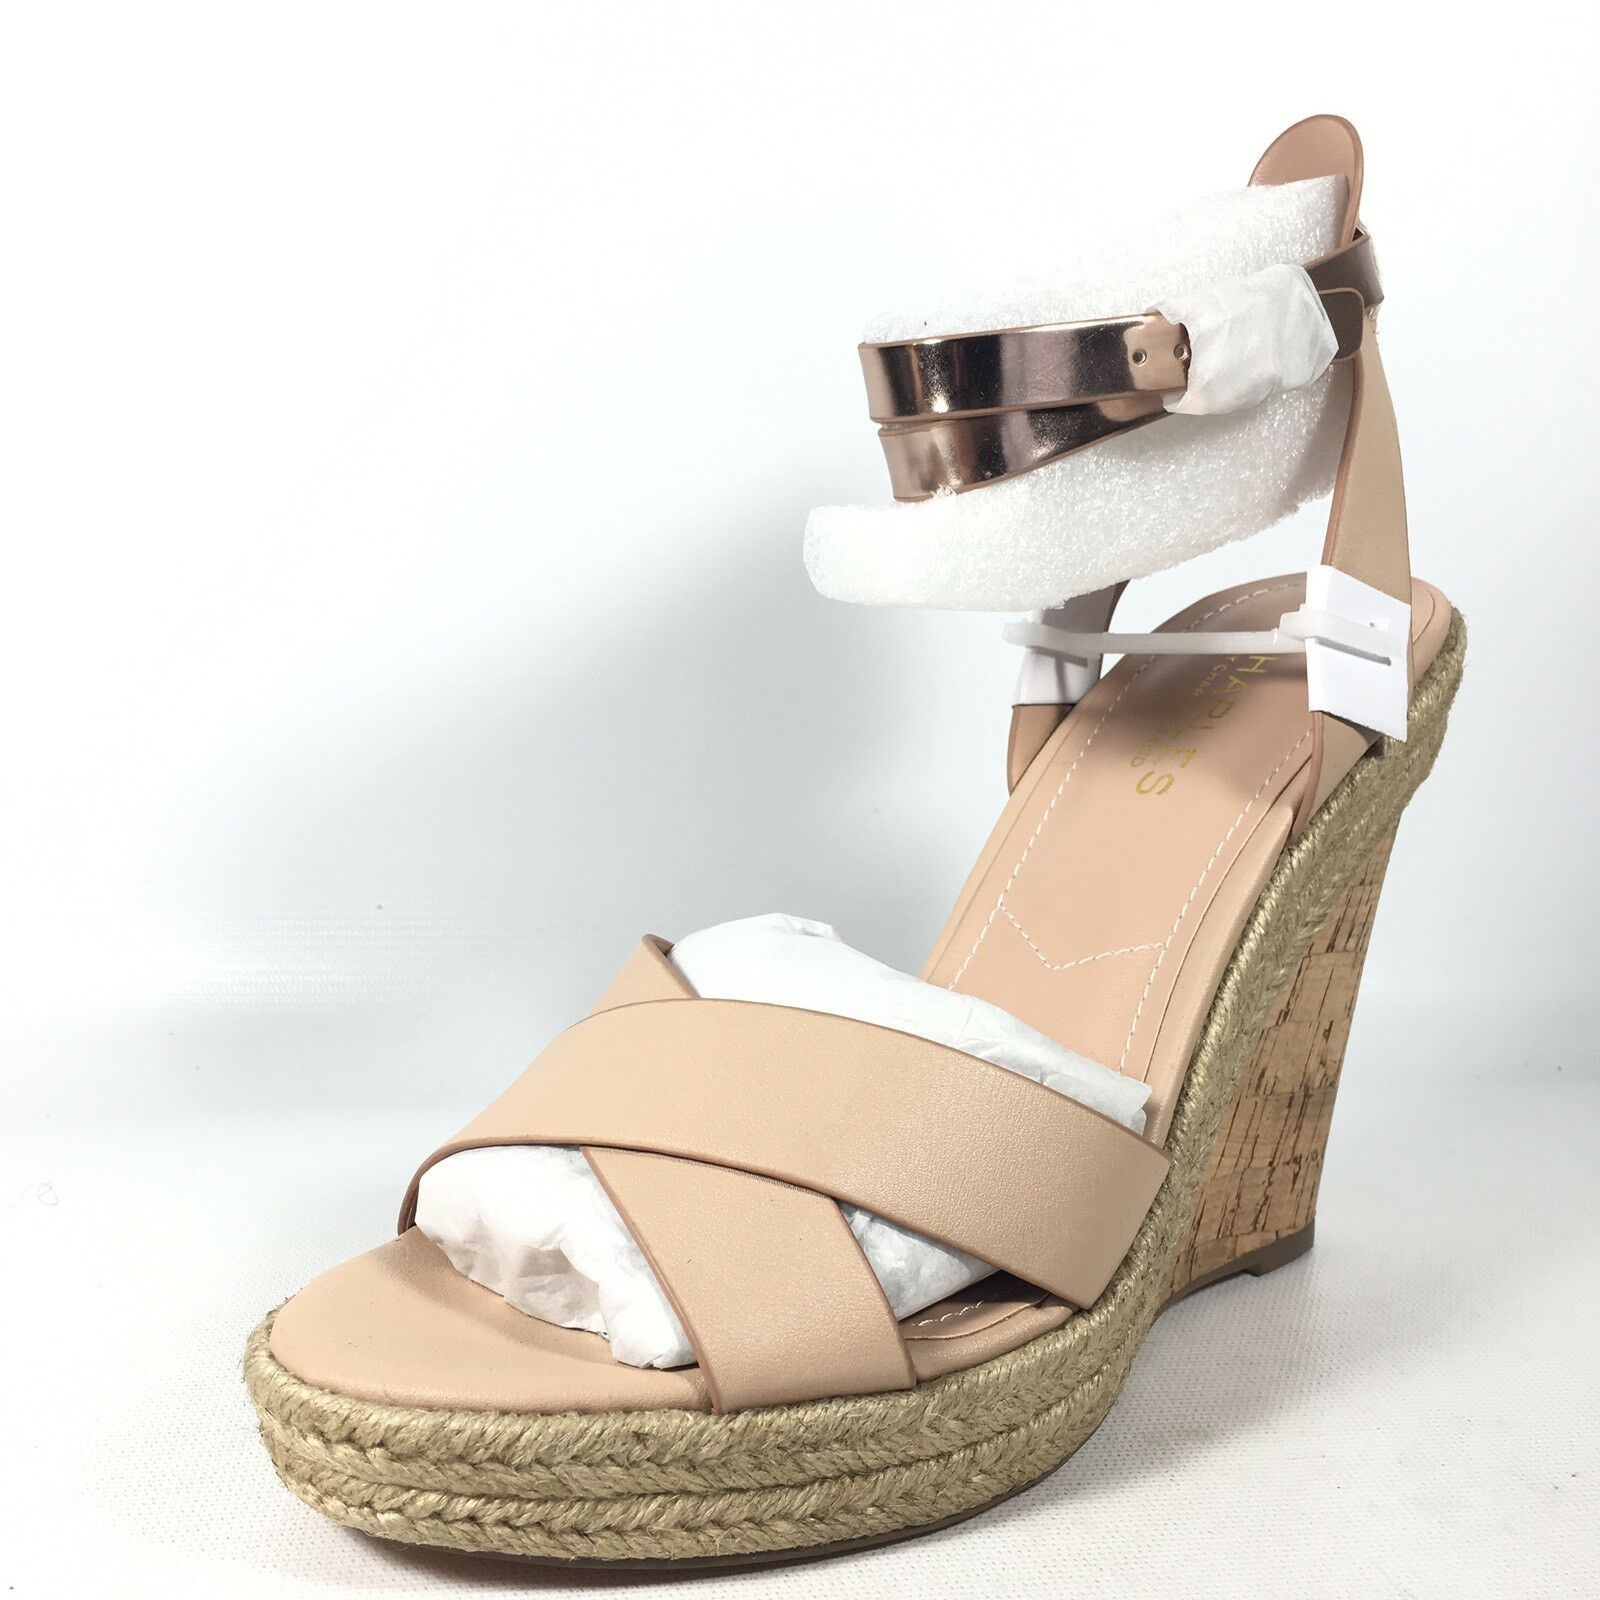 Charles David  Brit  Womens 9 M Nude Nude Nude Metallic Sandal Wedge 5c883c